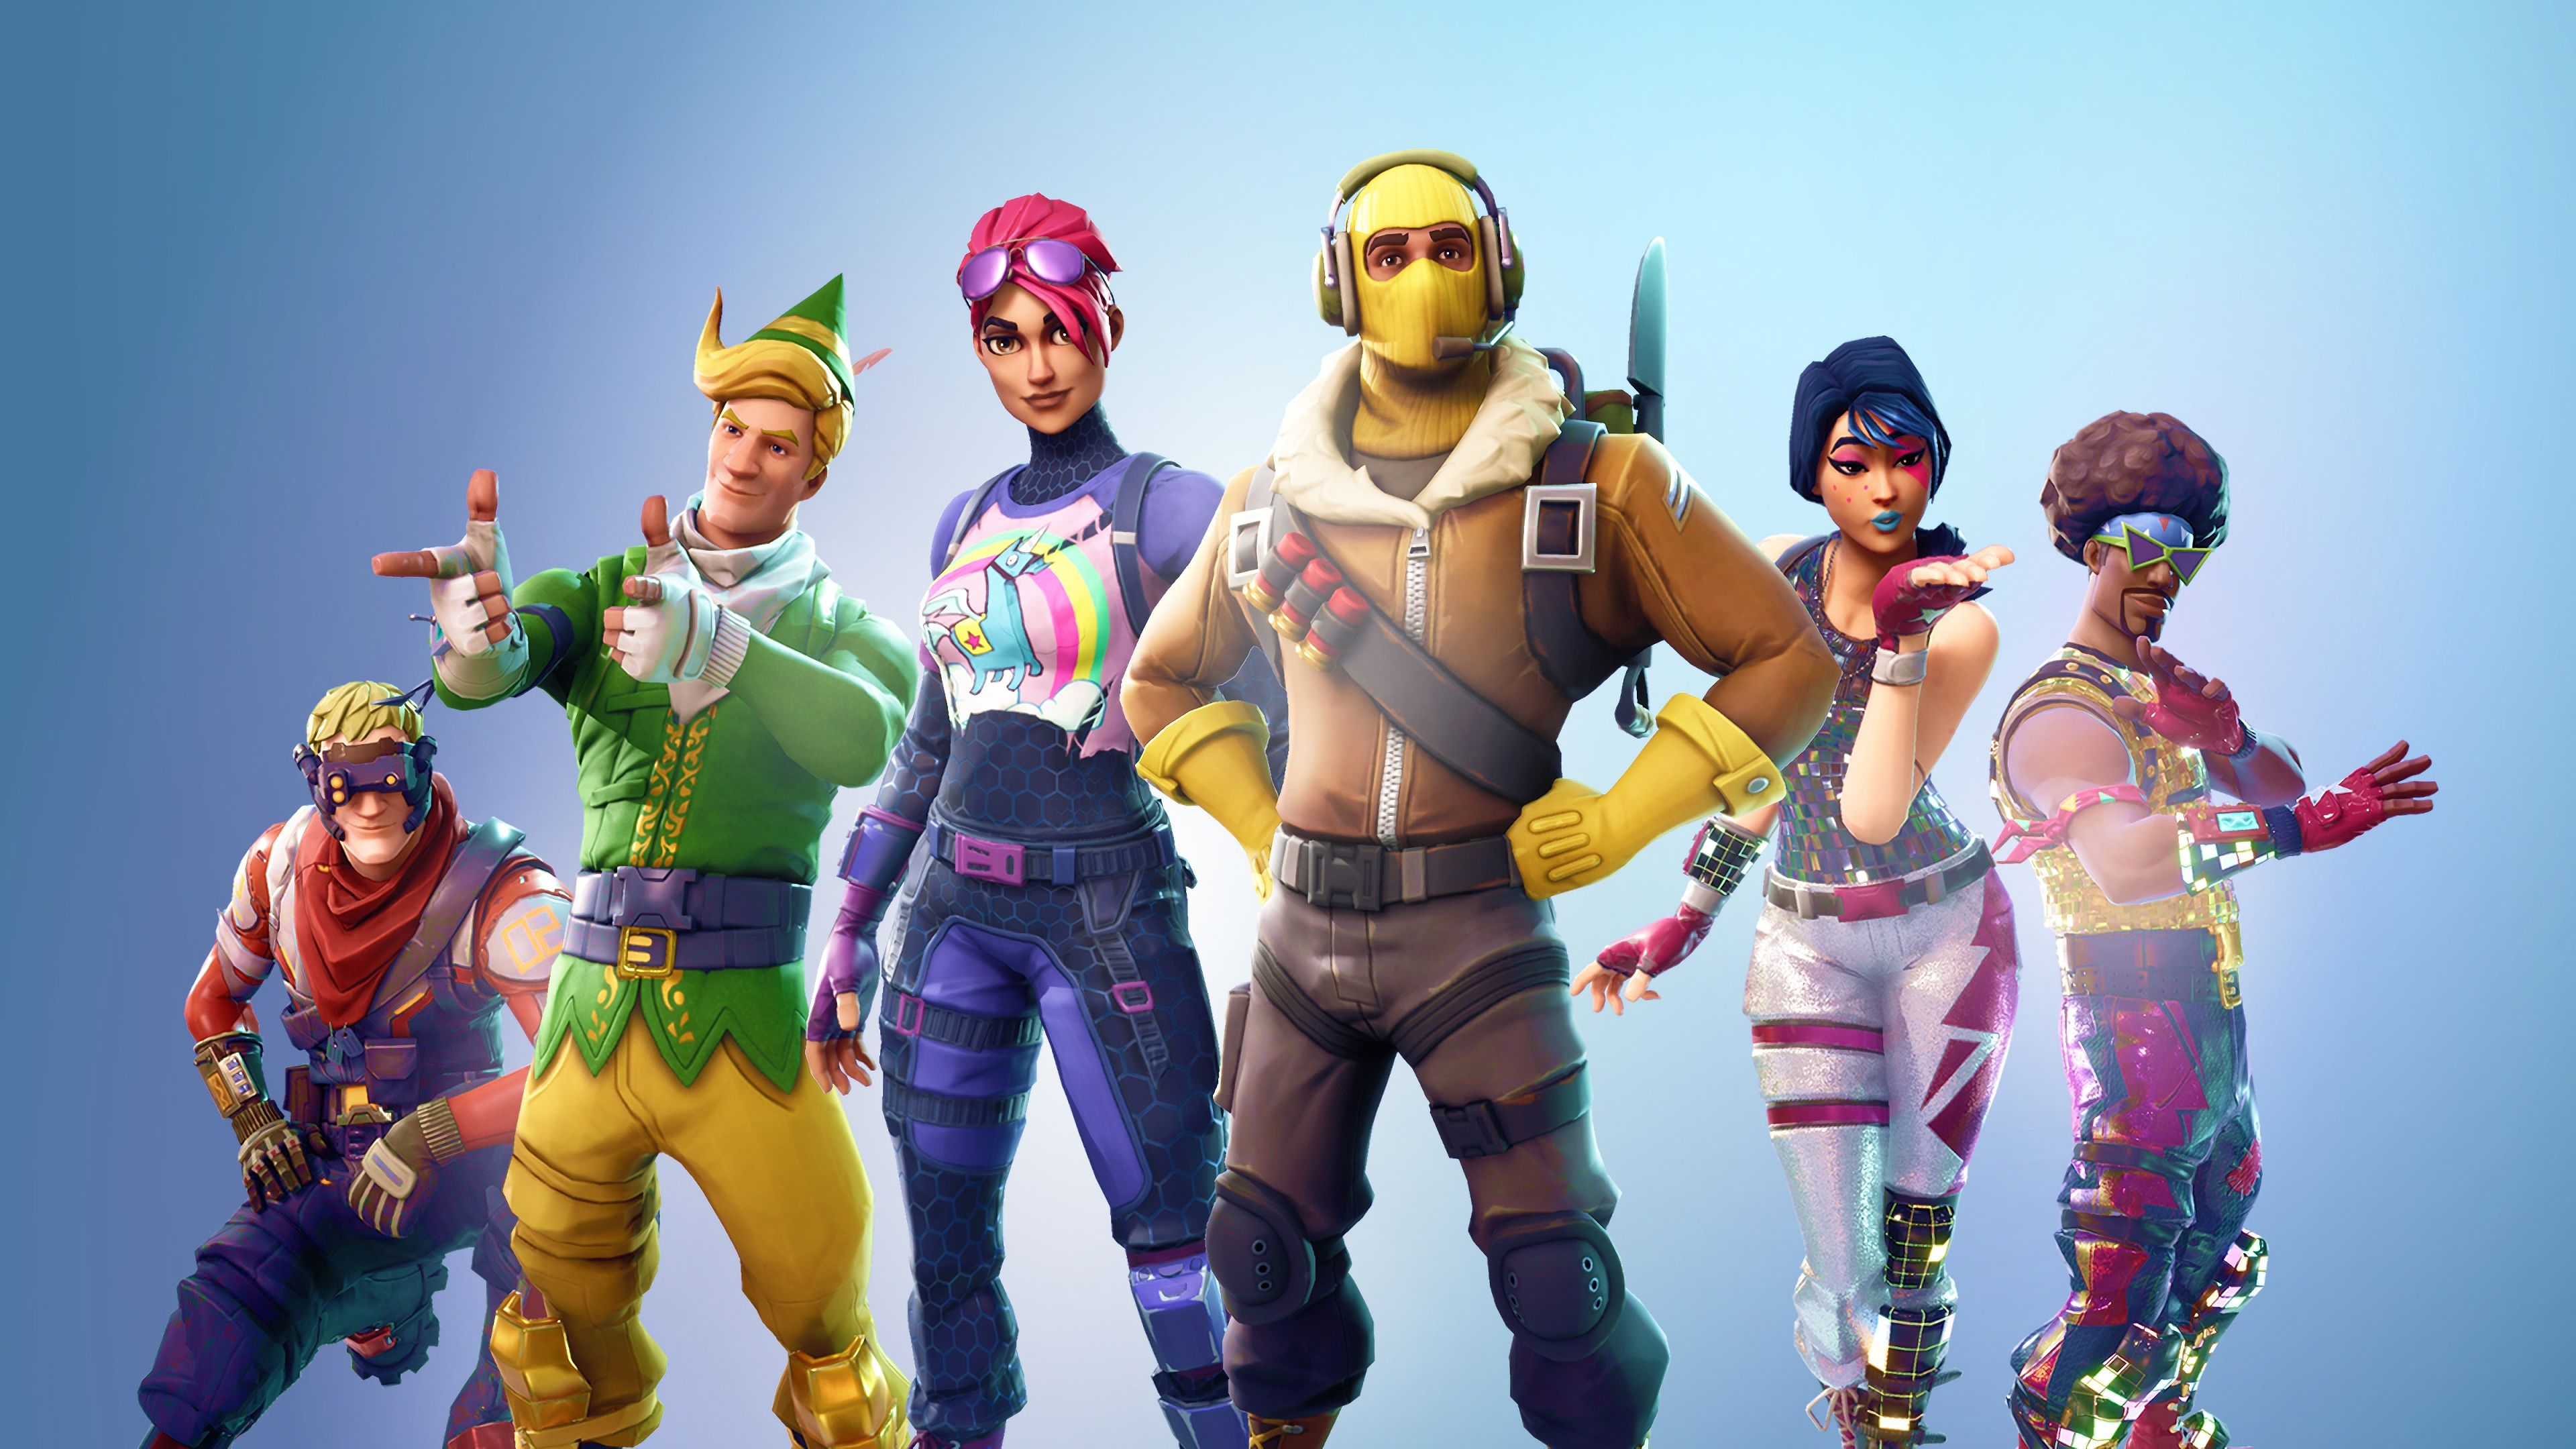 Fortnite Battle Royale Outfits Raptor Brite Bomber Sparkle 3840x2160